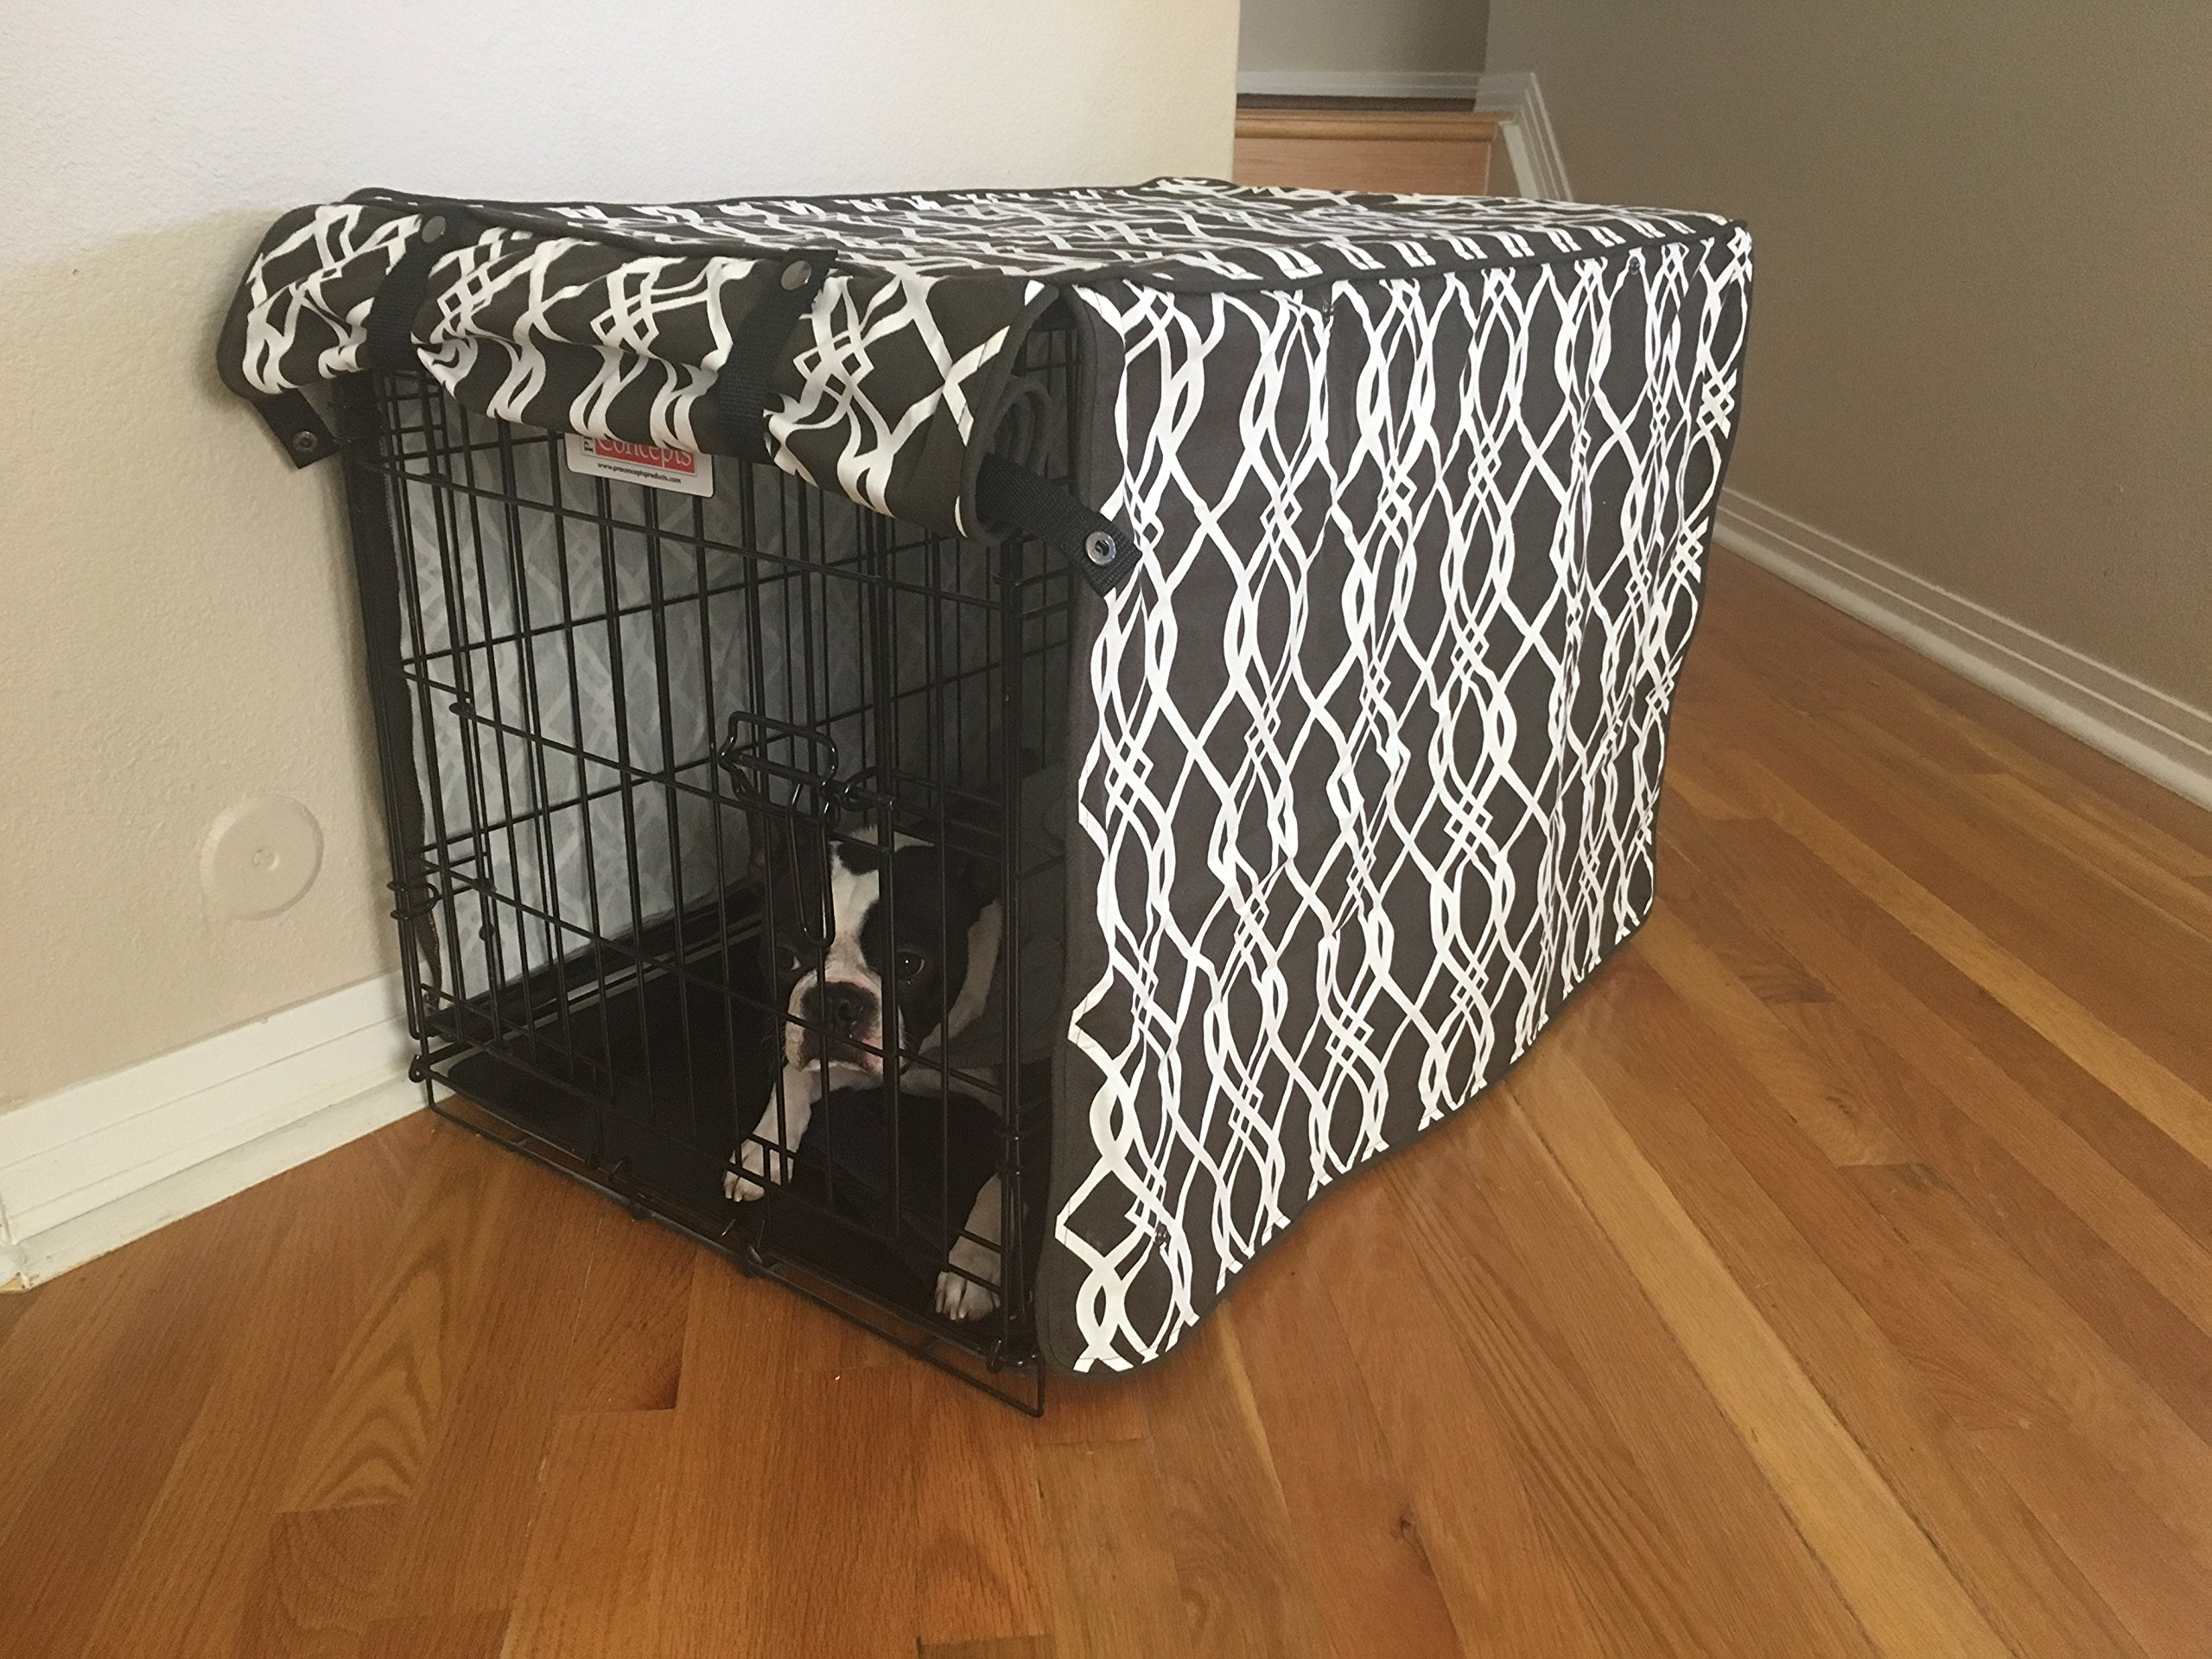 528 Zone Modern Brown & White Designer Dog Pet Wire Kennel Crate Cage House Cover (Small, Medium, Large, XL, XXL) (XXL 48x30x33) by 528 Zone